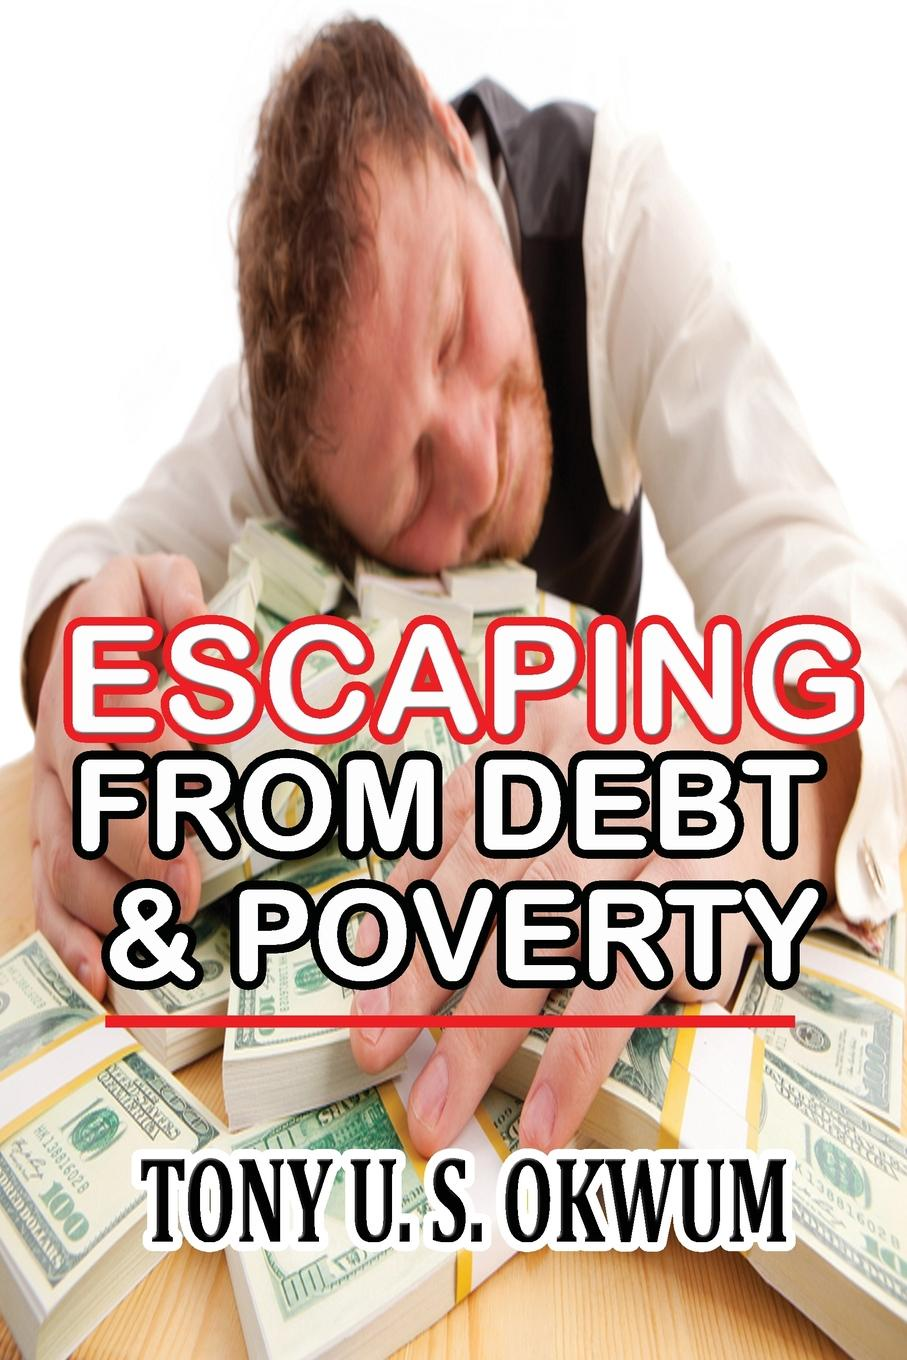 Tony U S Okwum ESCAPING FROM DEBT . POVERTY this book loves you